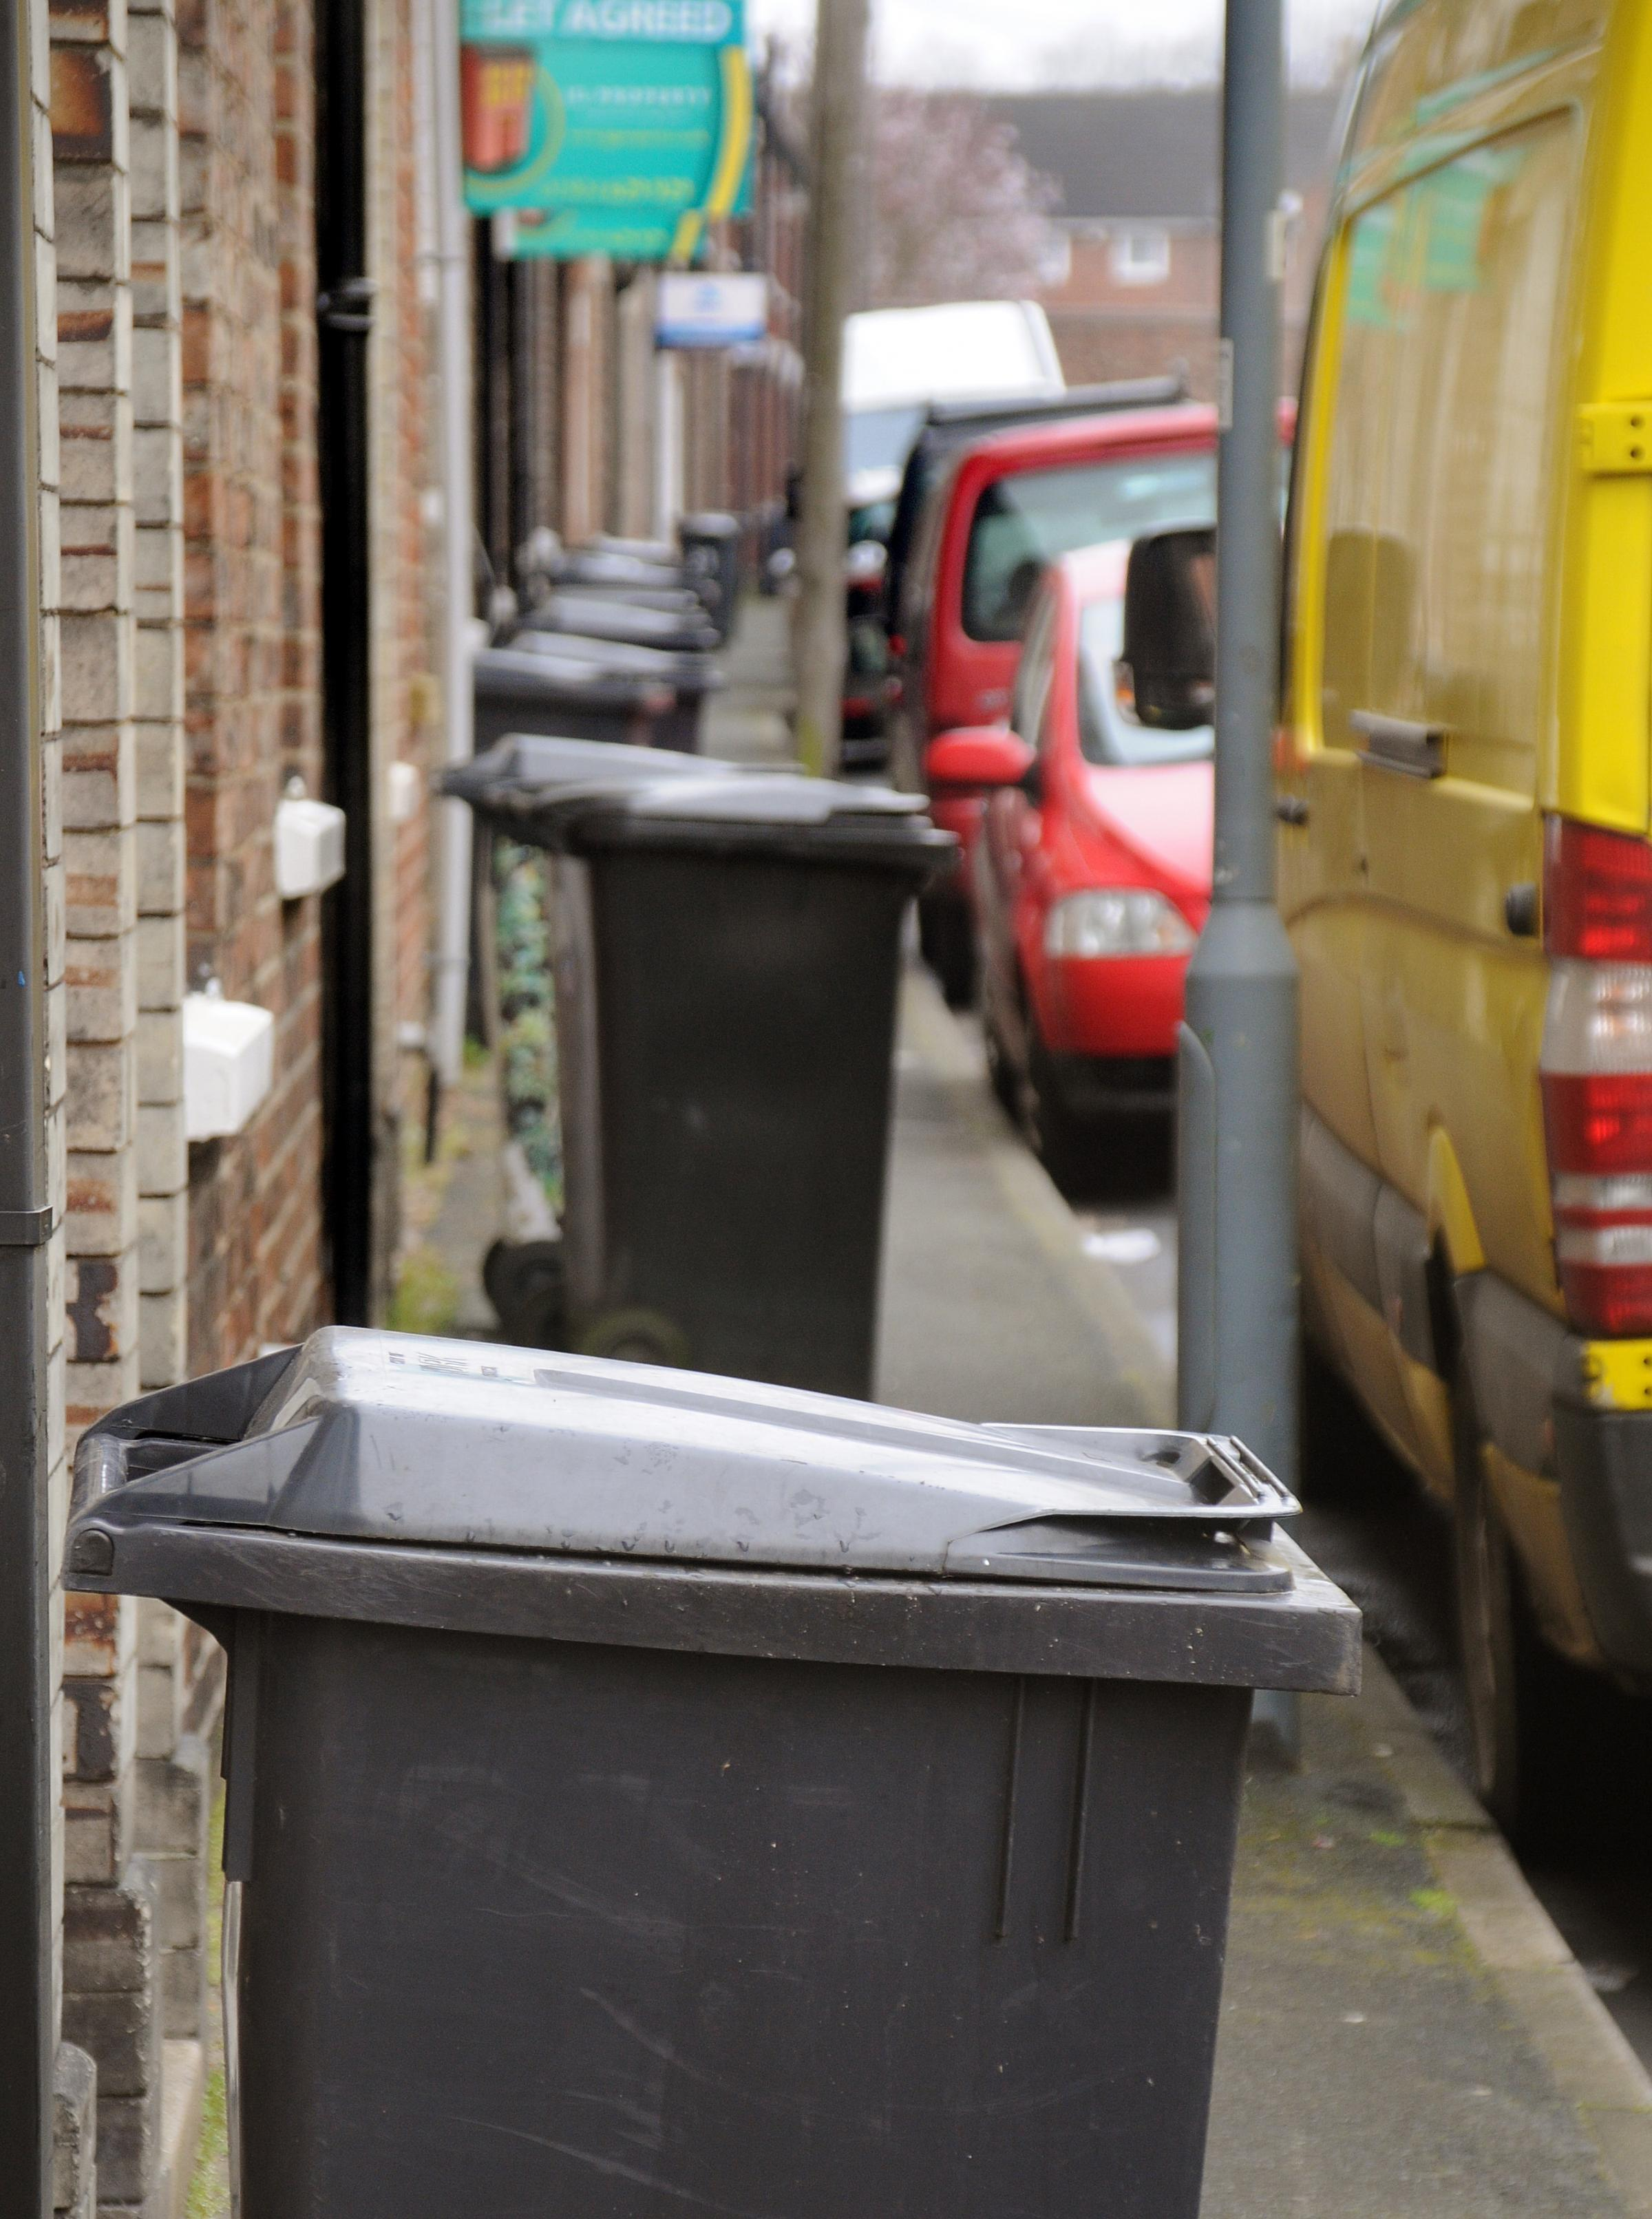 OBSTACLES: Farrar Street, where bins have not been emptied because refuse trucks cannot get down the street